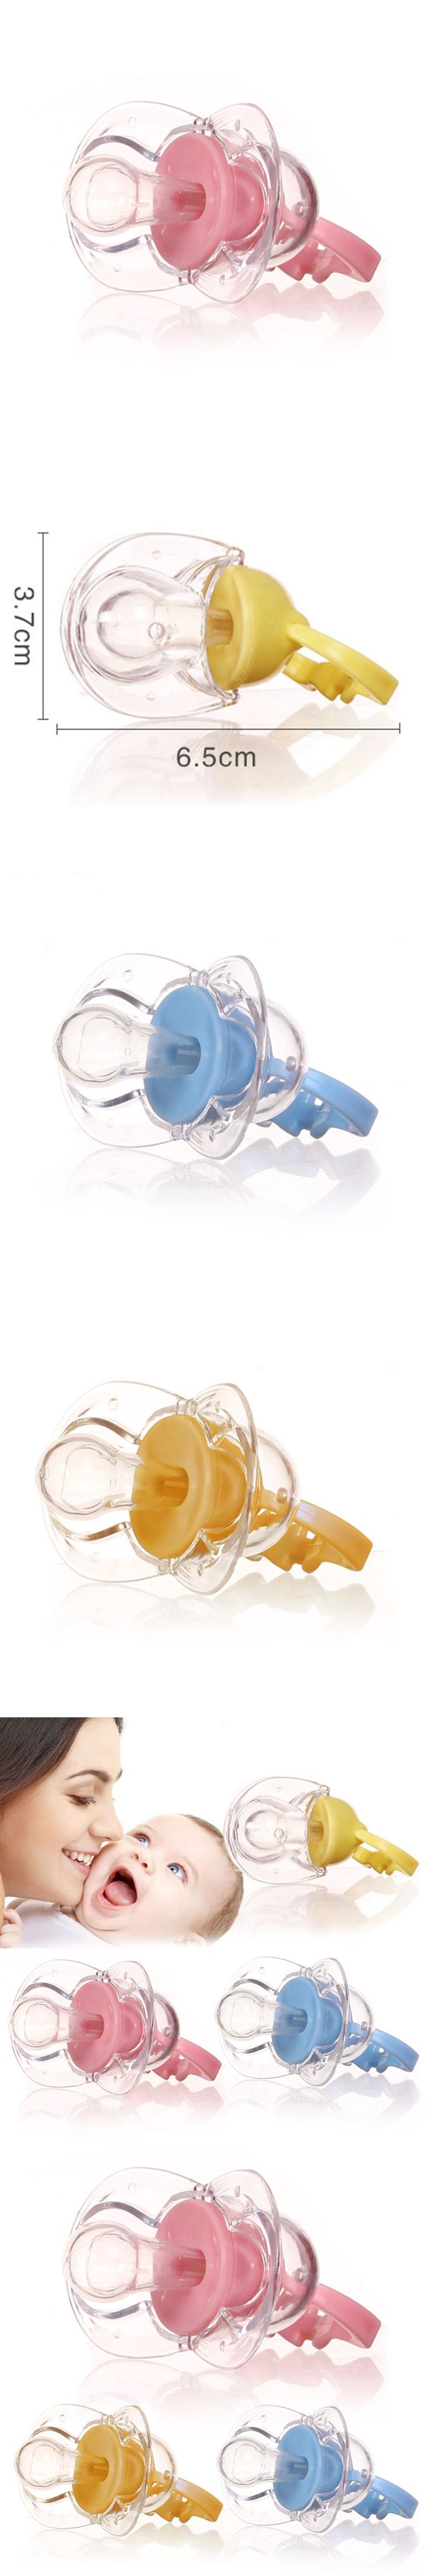 Portable Convenient Orthodontic Pacifier Soft Baby Dummy Transparent Silicone Soother Safe Flexible Harmless